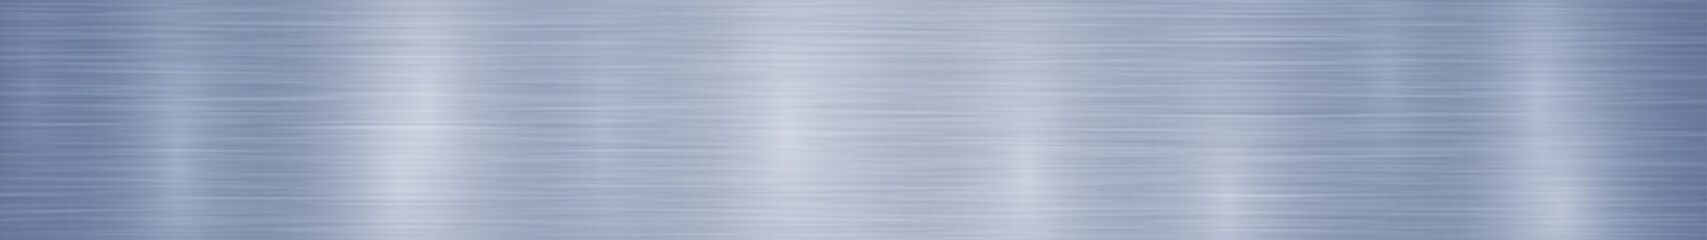 Abstract horizontal metal banner or background with glares in blue colors